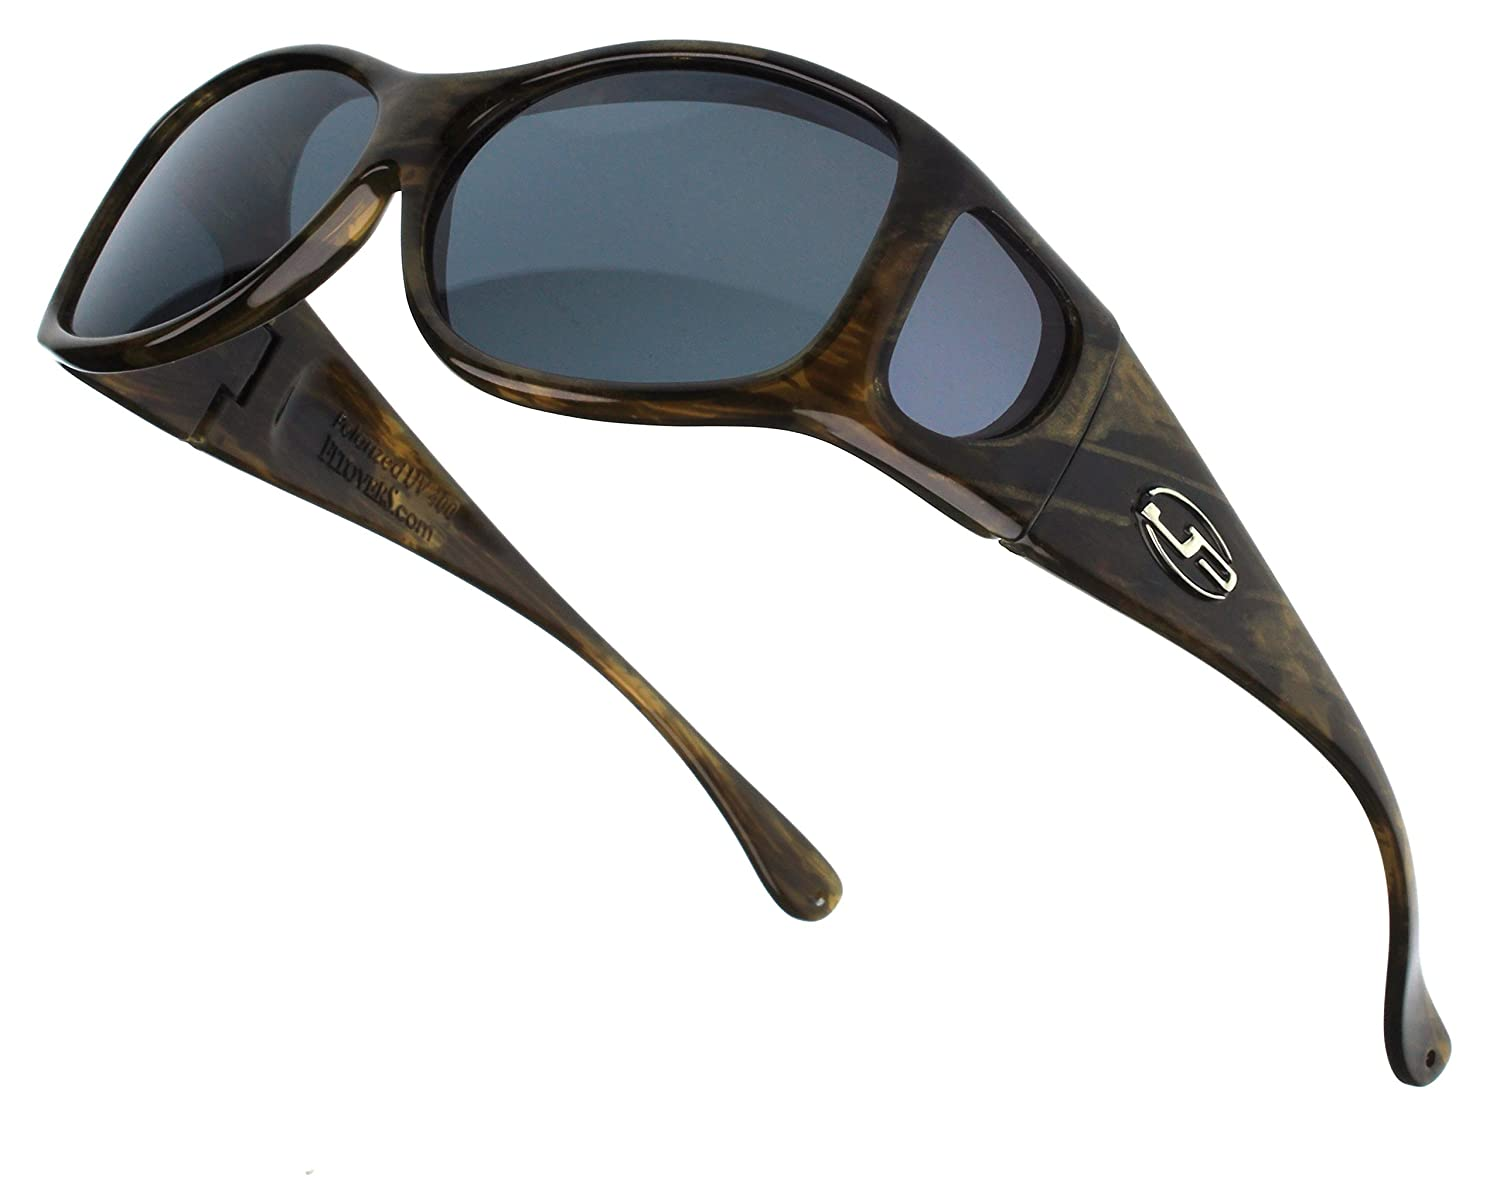 a8bcfd415df7 Amazon.com  Jonathan Paul Fitovers XS Glides Brushed Horn Polarized Gray  Sunglasses  Clothing